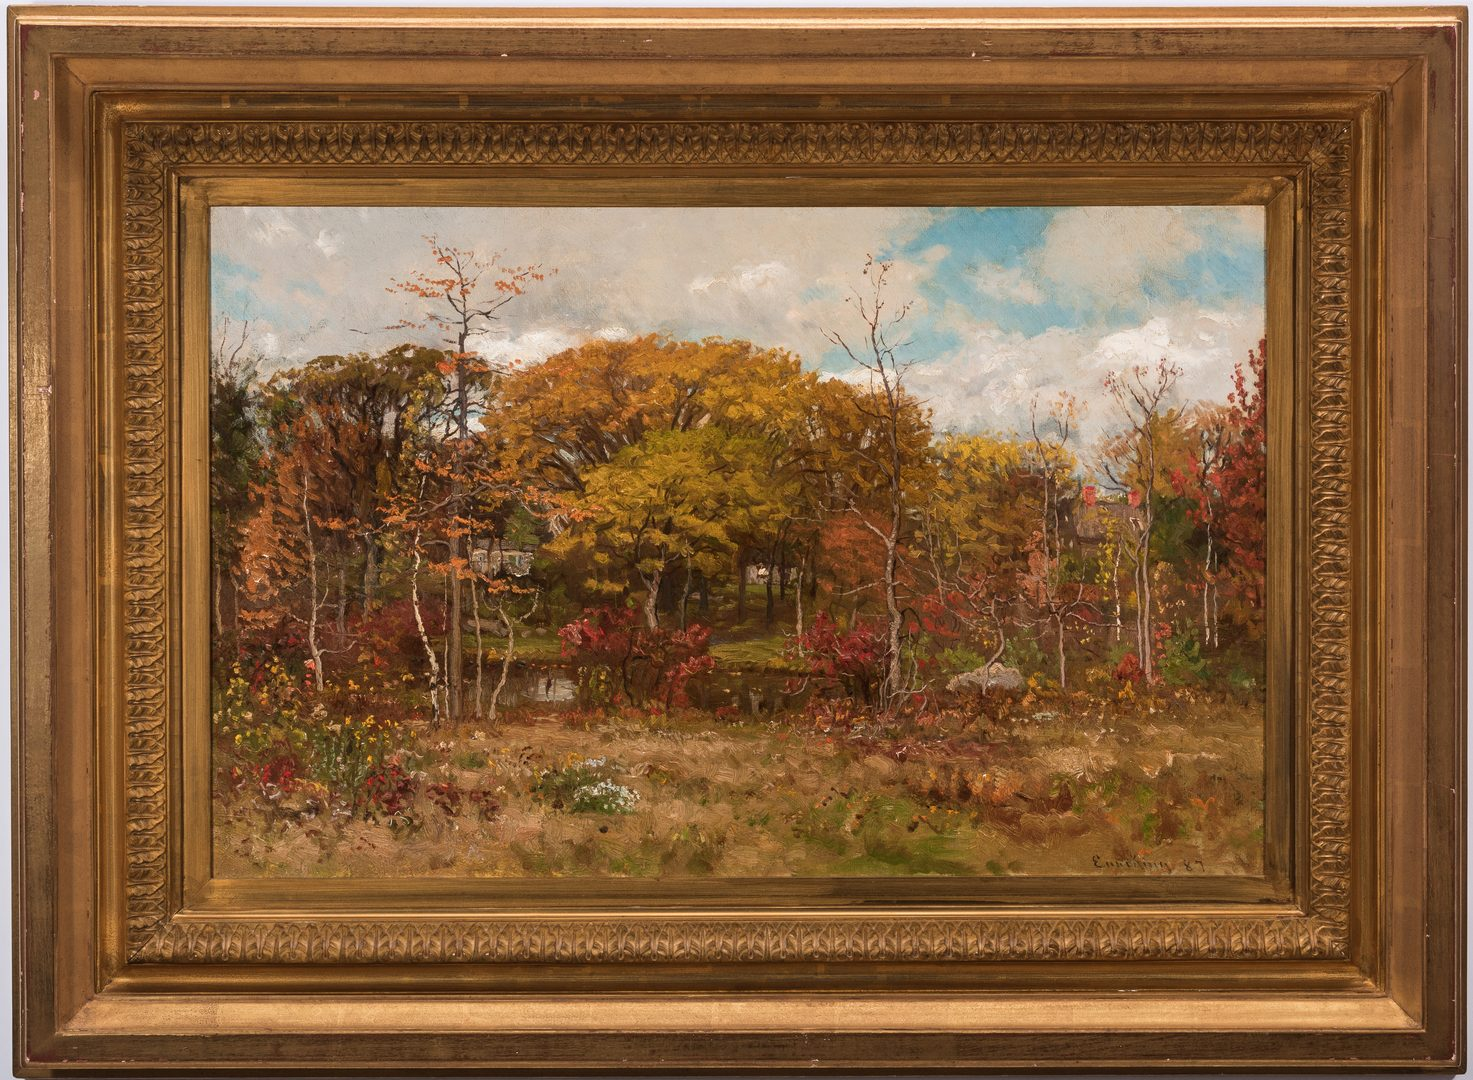 Lot 120: John Joseph Enneking O/C, Landscape with River